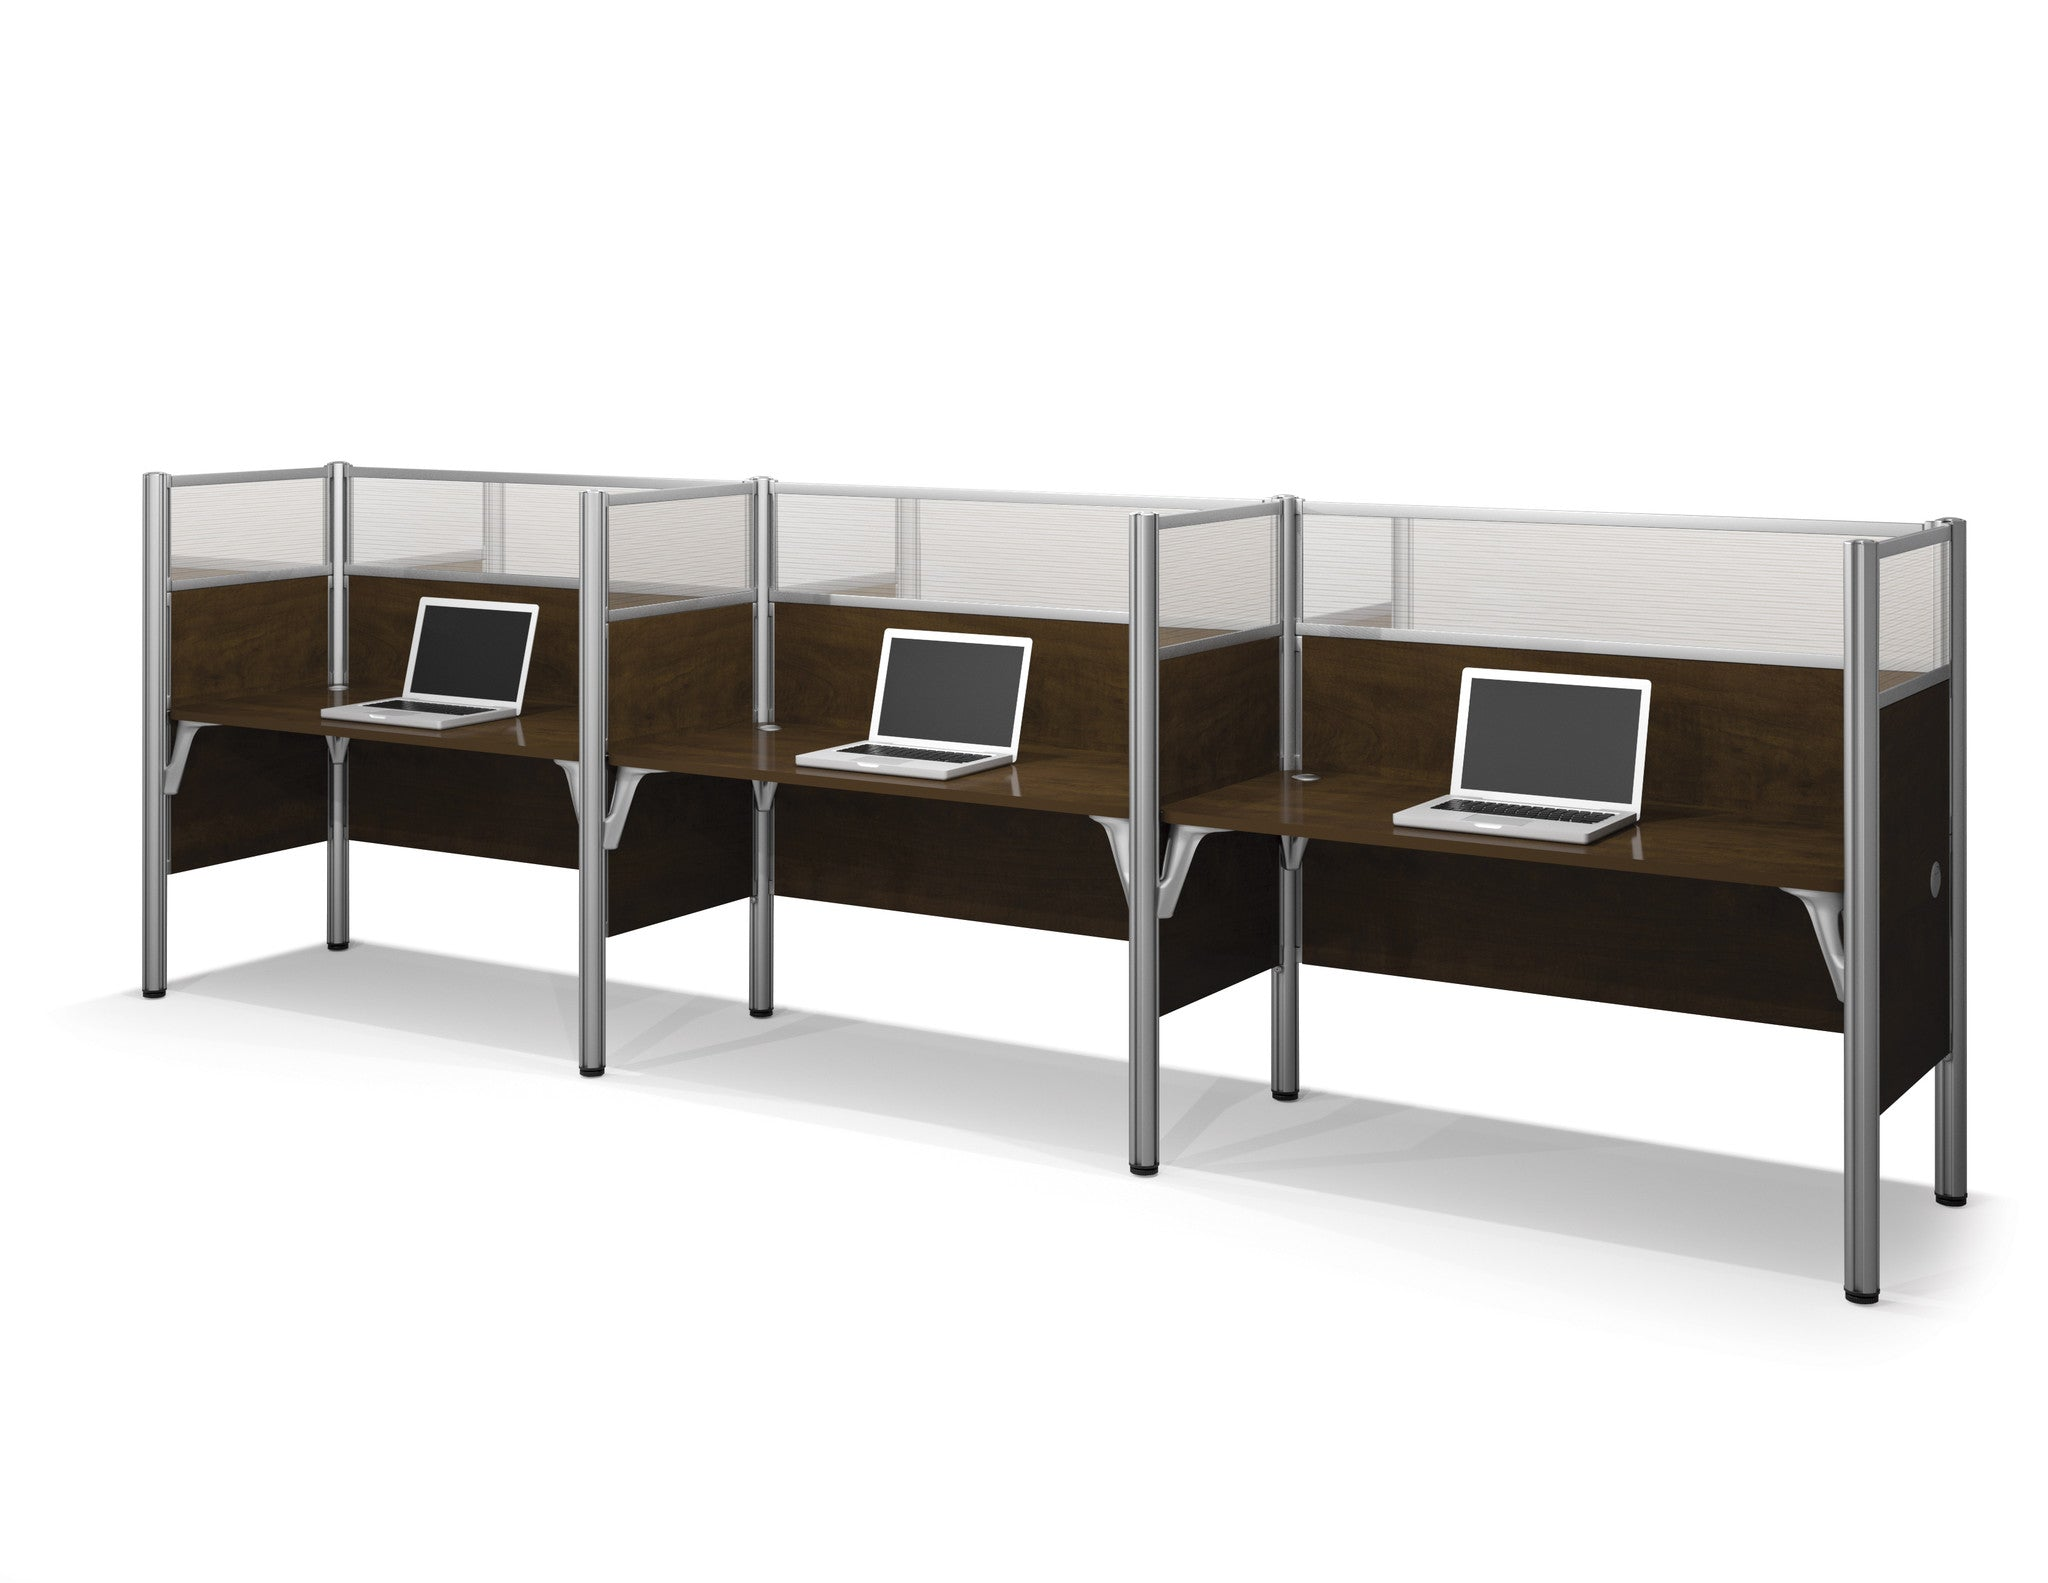 "Pro-Biz Premium Triple Workstation with 55"" Privacy Panel in Chocolate"